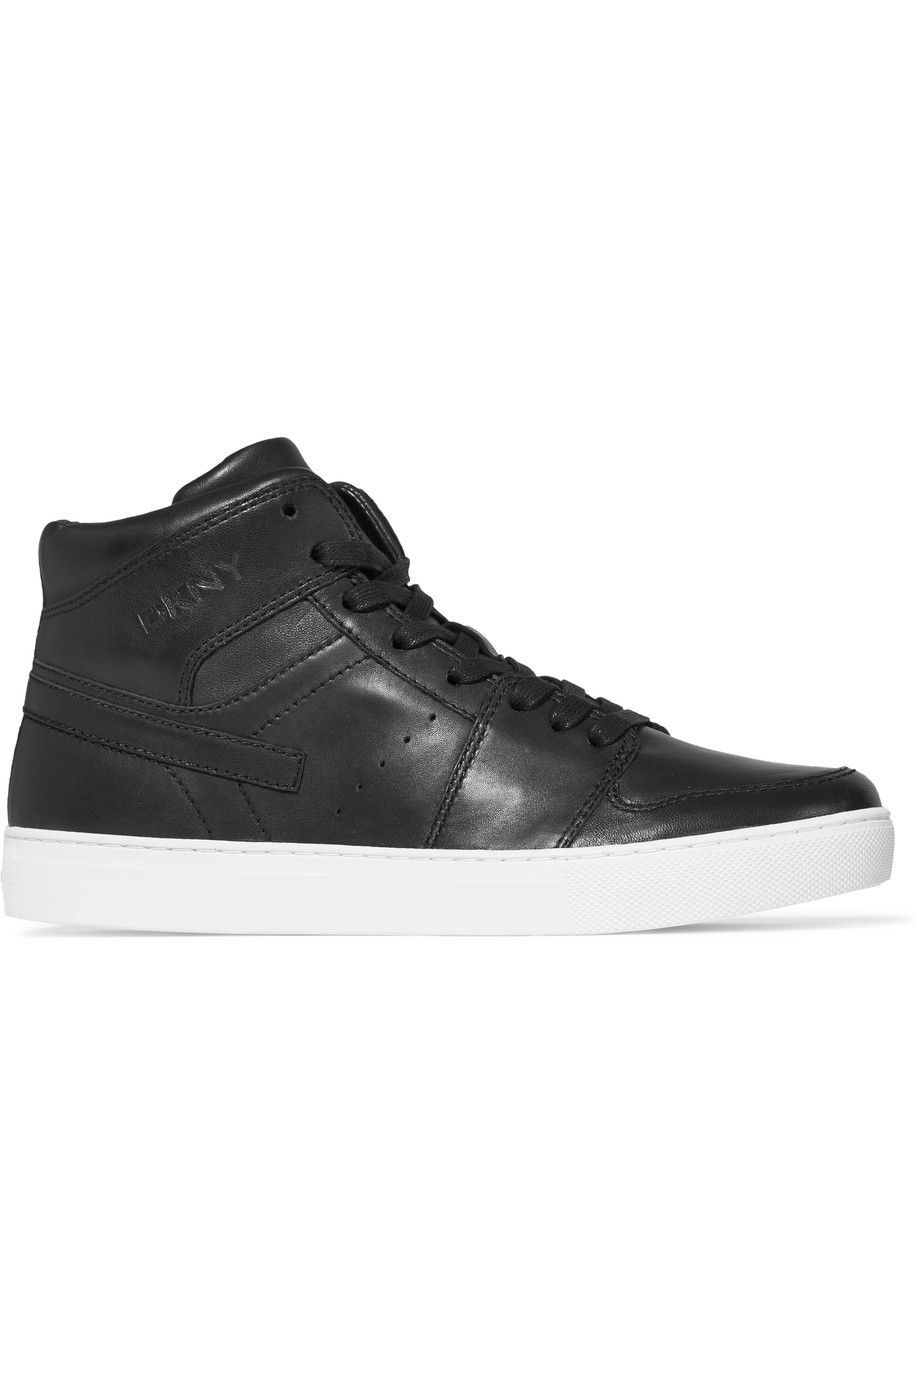 538f73f593b7 DKNY Carl leather high-top sneakers.  dkny  shoes  sneakers